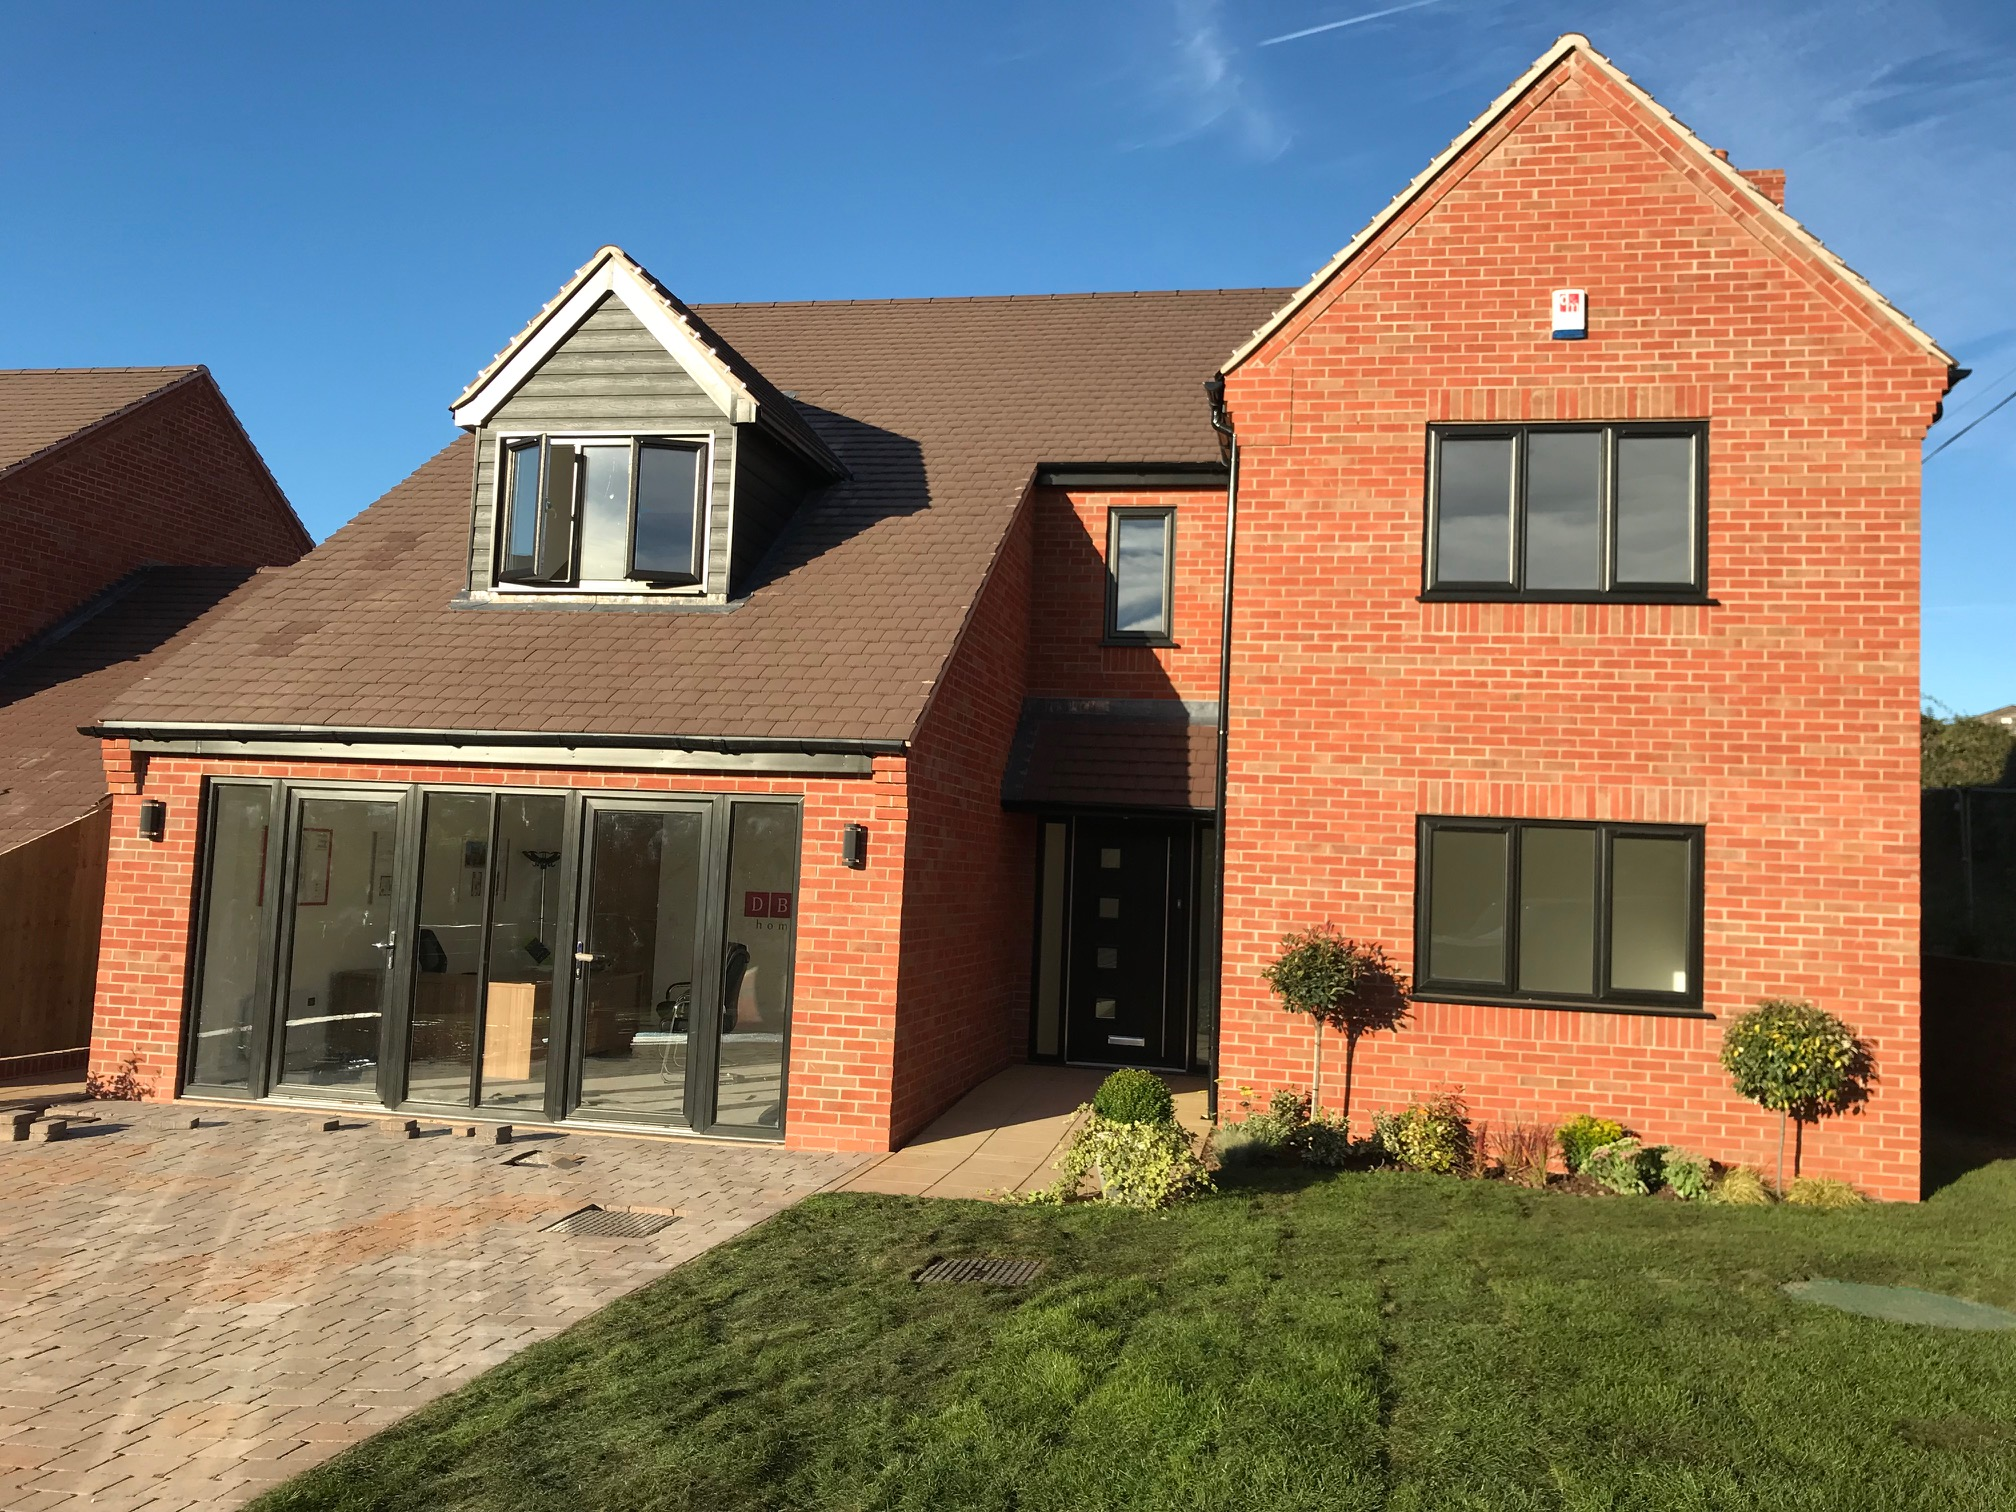 DBA Homes Morville Update - Our show home is almost ready to open at Haughton Grange, Morville.